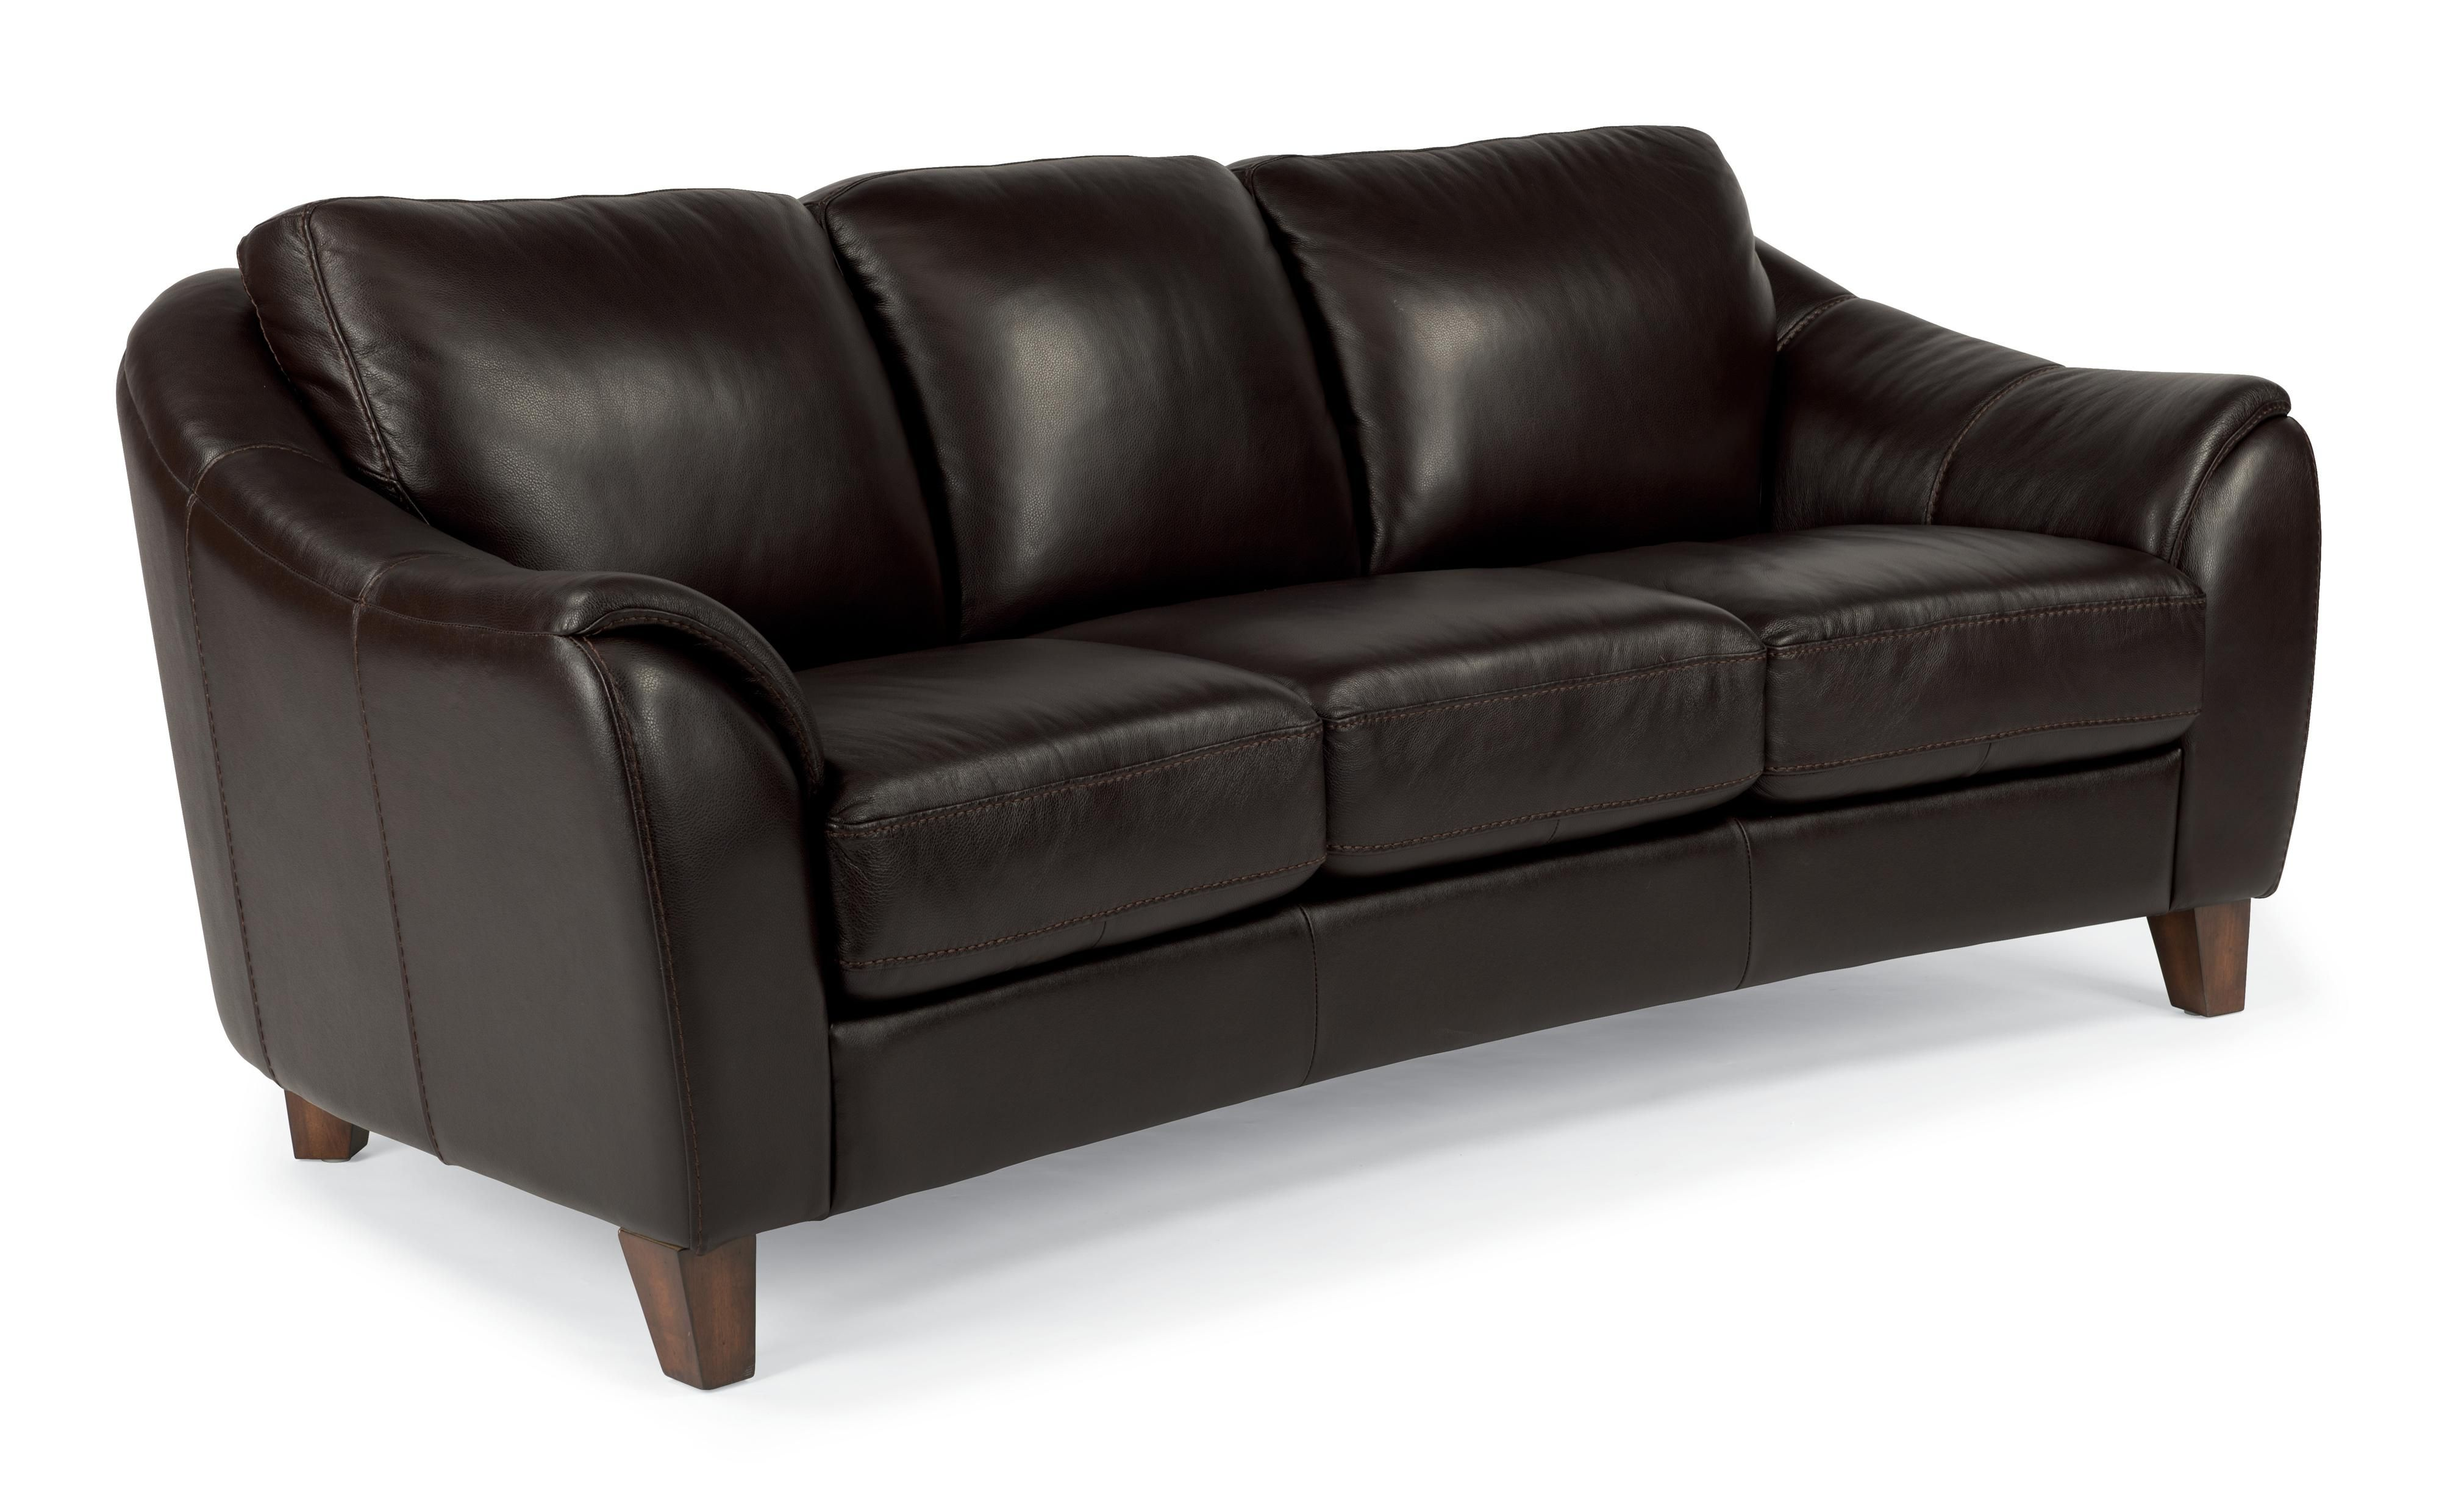 Leather Furniture Traveler Collection: Flexsteel Latitudes-Lidia Contemporary Leather Sofa With